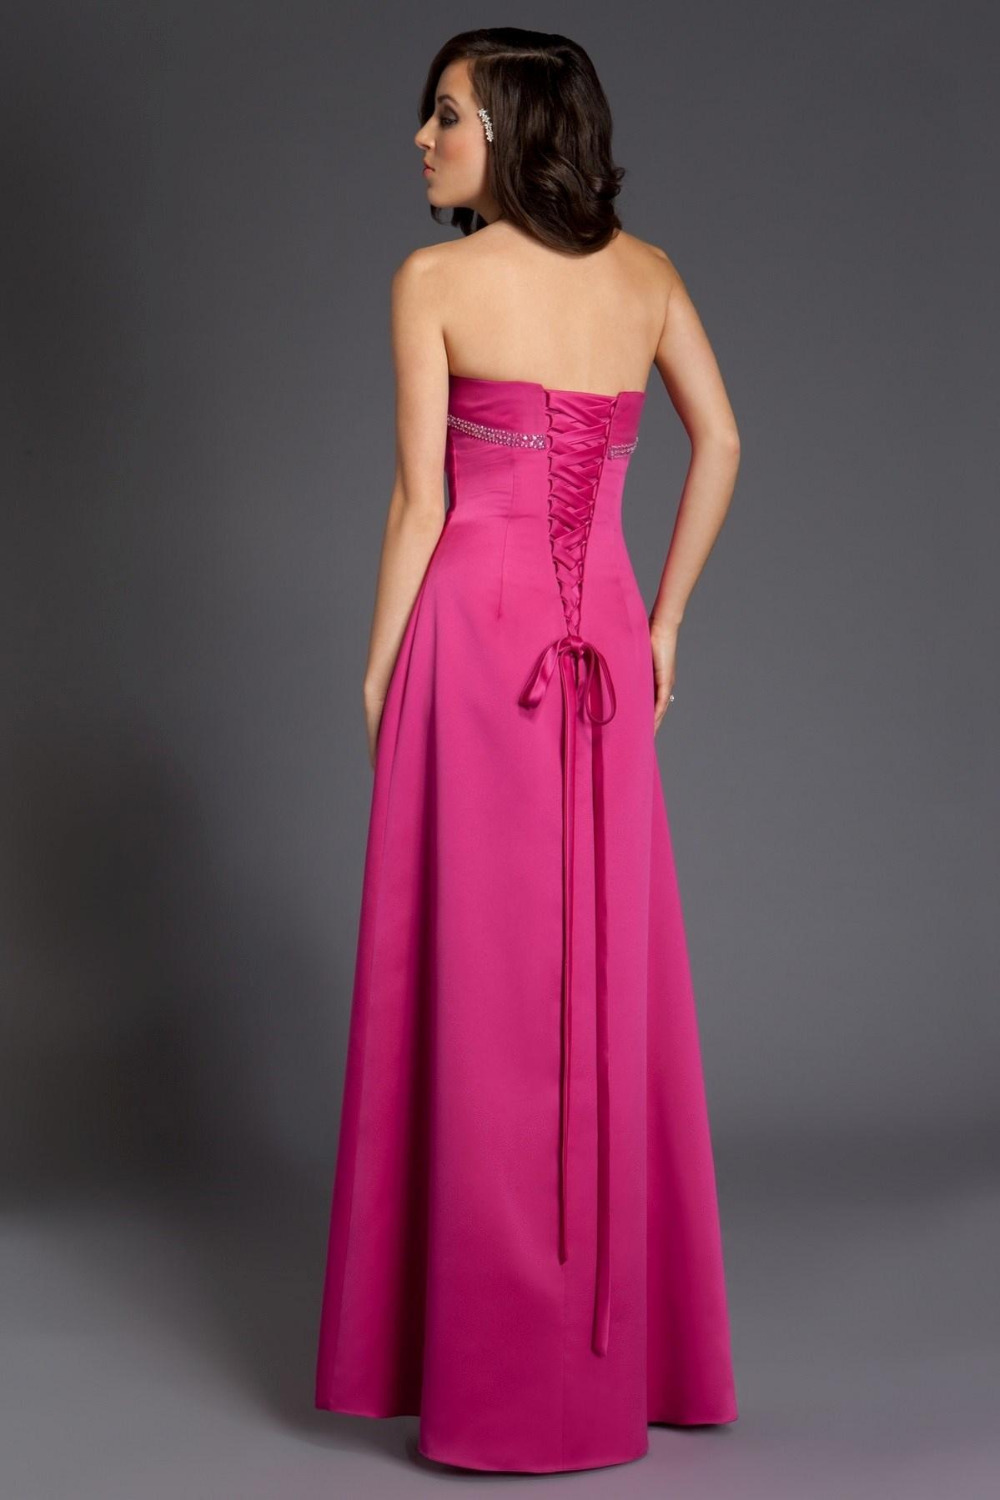 2015 fuschia bridesmaid dresses sexy formal prom gowns pink lace 2015 fuschia bridesmaid dresses sexy formal prom gowns pink lace up cheap long dress plus size for wedding maid of honor crystal in bridesmaid dresses from ombrellifo Images